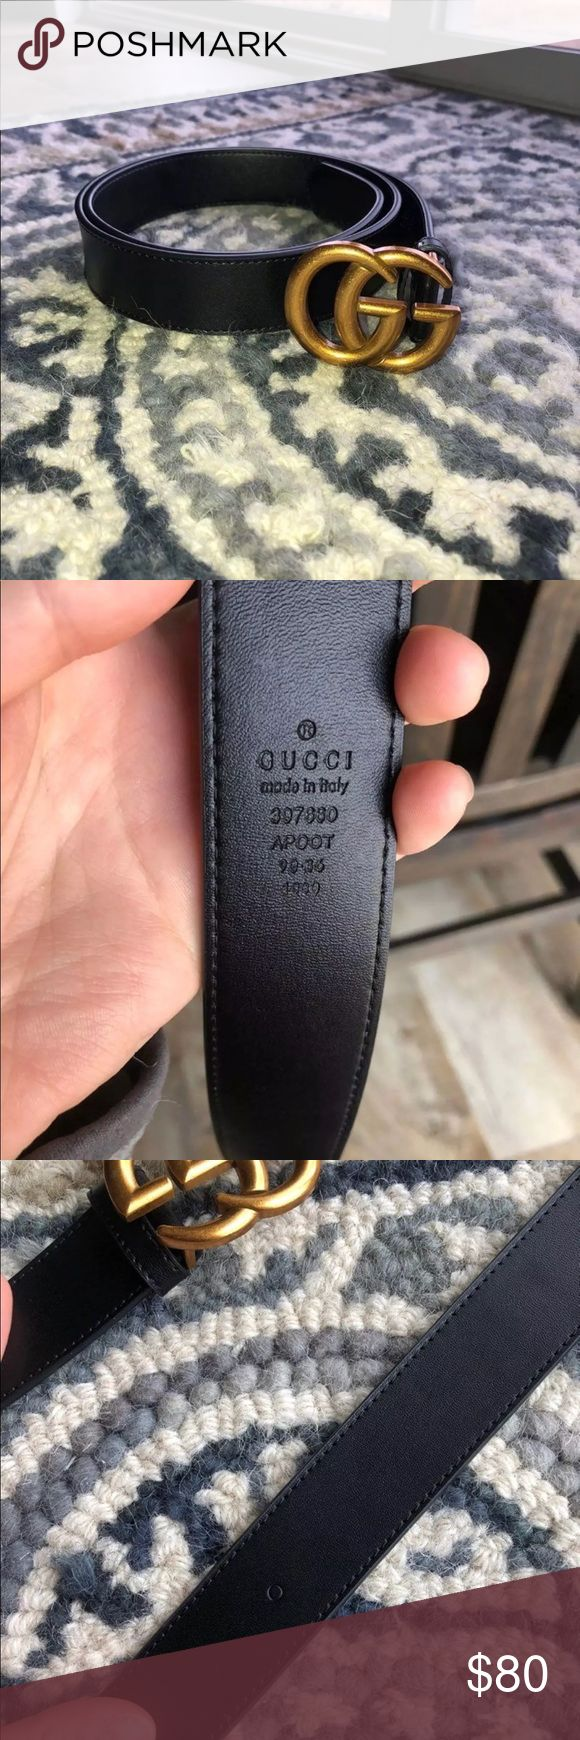 Gucci Belt 40.5 inches long, small scratch on buckle shown. Imprint of a hole that isn't a hole also shown. Price reflects authenticity question Gucci Accessories Belts